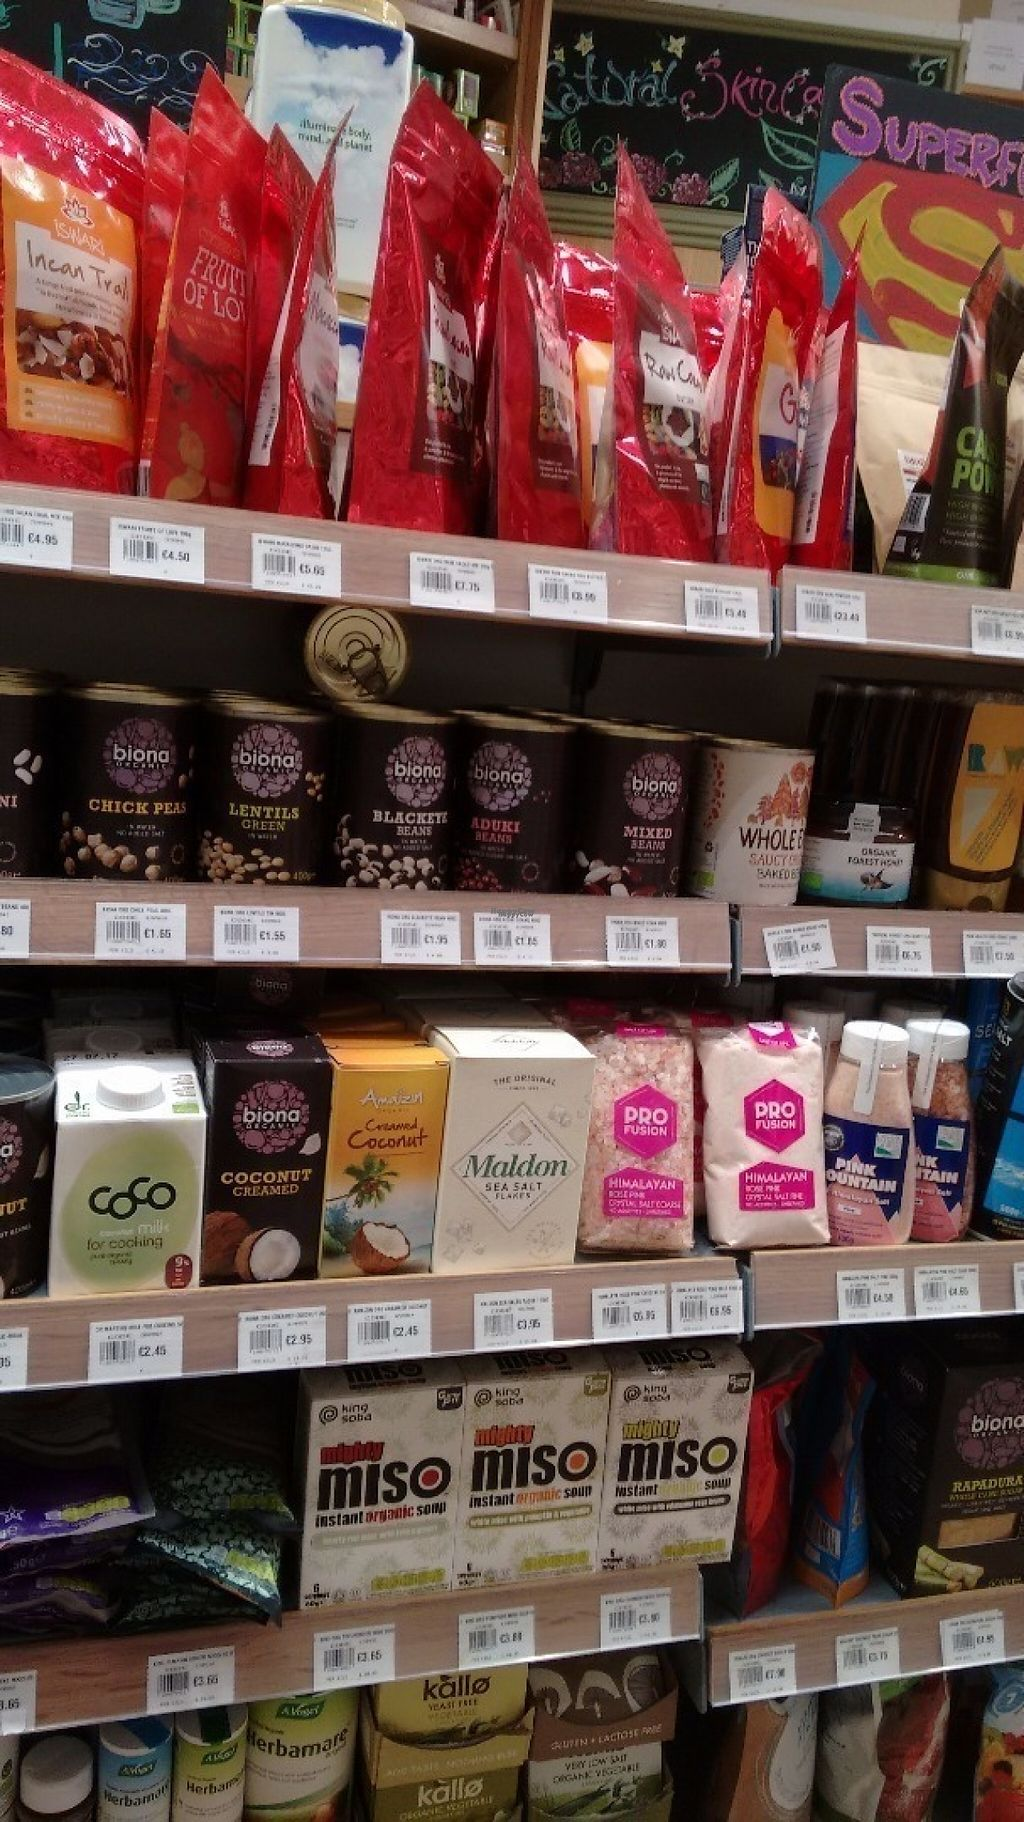 """Photo of Nourish - Wicklow Street  by <a href=""""/members/profile/craigmc"""">craigmc</a> <br/>Staples <br/> August 19, 2016  - <a href='/contact/abuse/image/12471/170034'>Report</a>"""